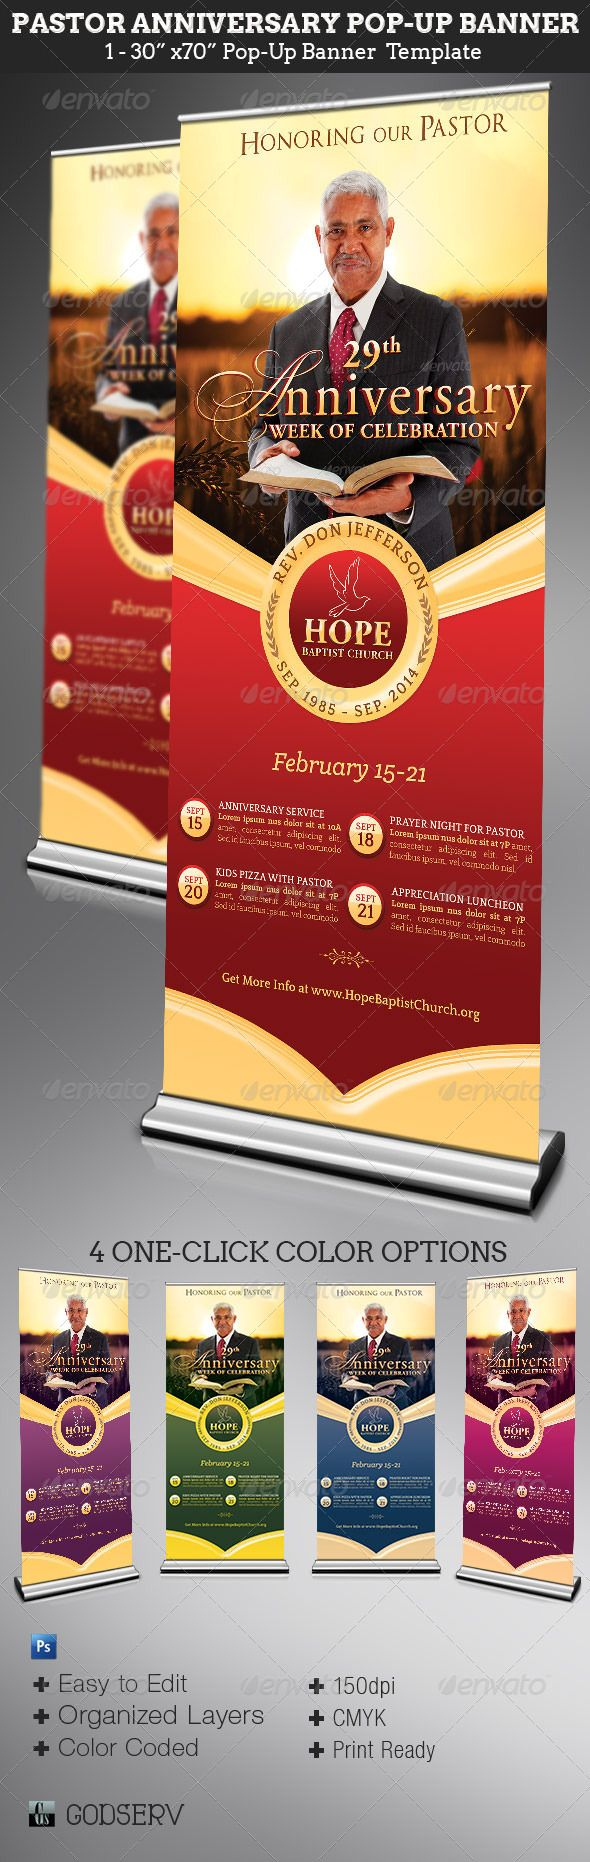 "Pastor Anniversary Pop-Up Banner Template  - $6.0 The Pastor Anniversary Pop-Up Banner Template is for church pastor anniversary celebration and appreciation events. Can also be edited and used for event promotions like men's conventions etc. The template is Easy To Edit. All you need to do is, ""Edit, Save, Print"""